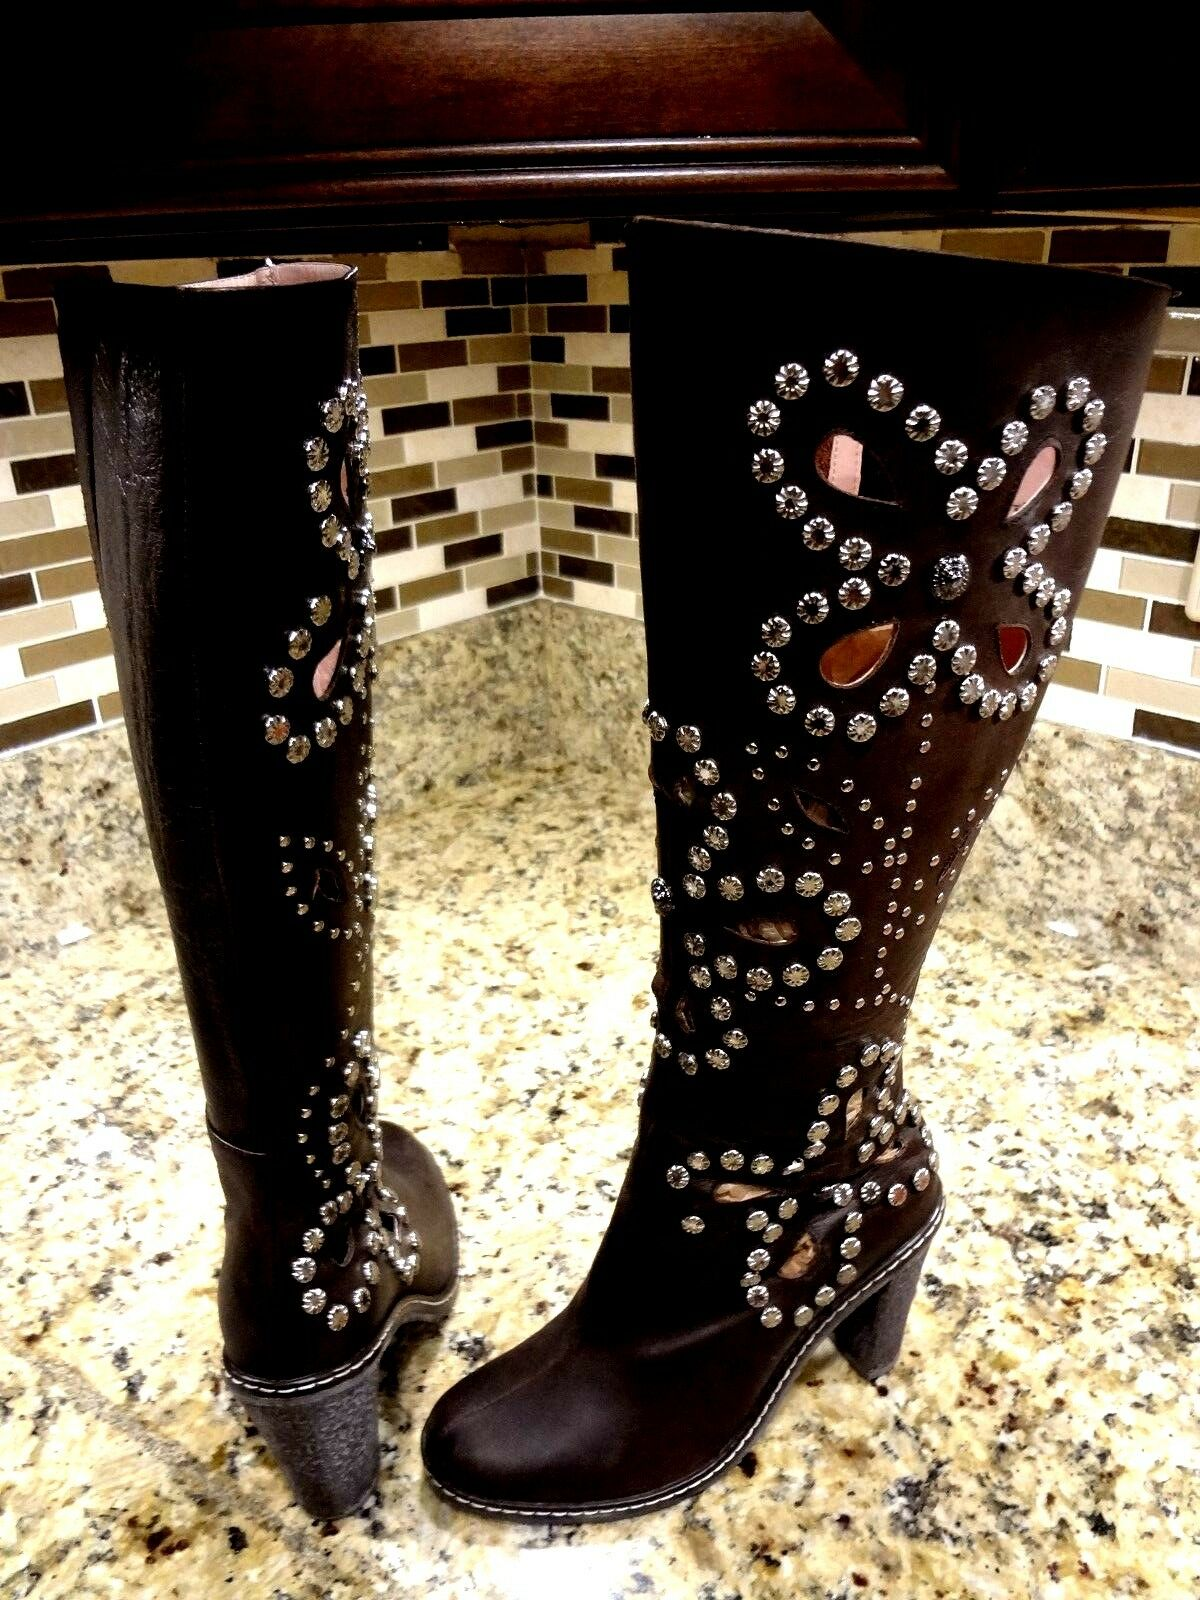 SIZE US N.Y.L.A 7 M BUTTERFLY  N.Y.L.A US TIARA Donna GALS BROWN LEATHER BOOTS FLORAL STUDS 6bc2c1